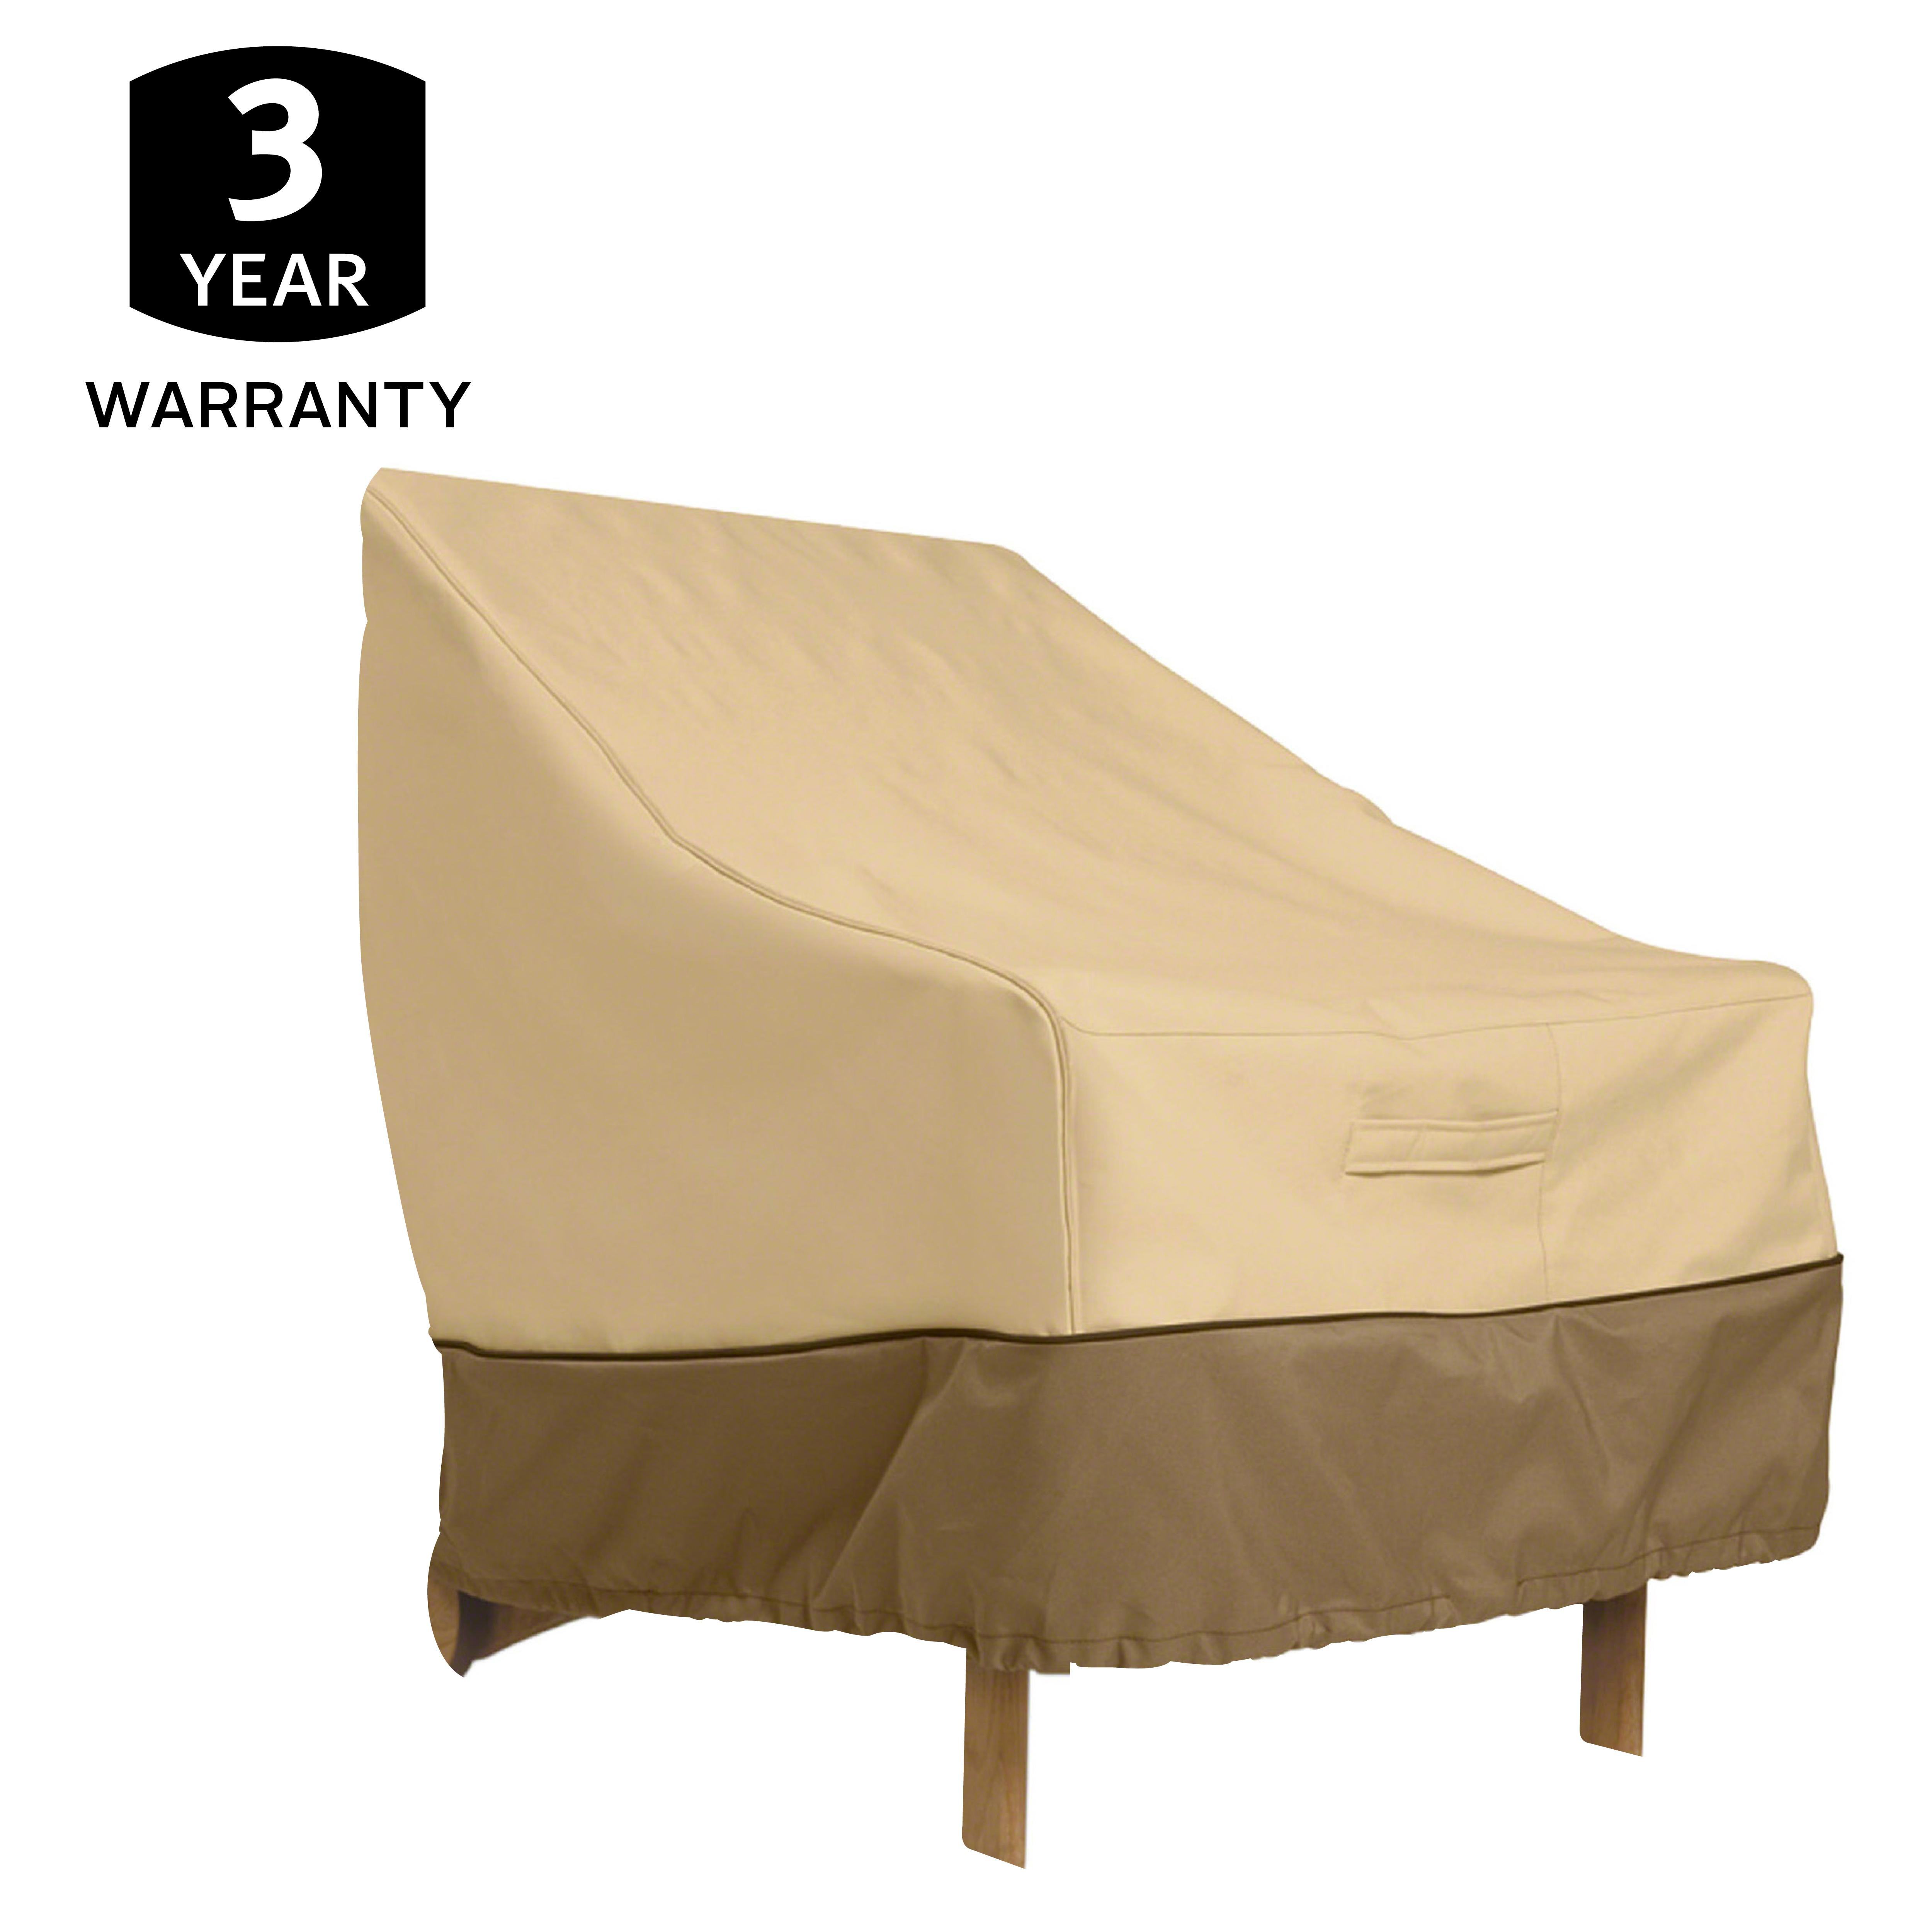 Classic Accessories Veranda Patio Chair Cover Durable and Water Resistant